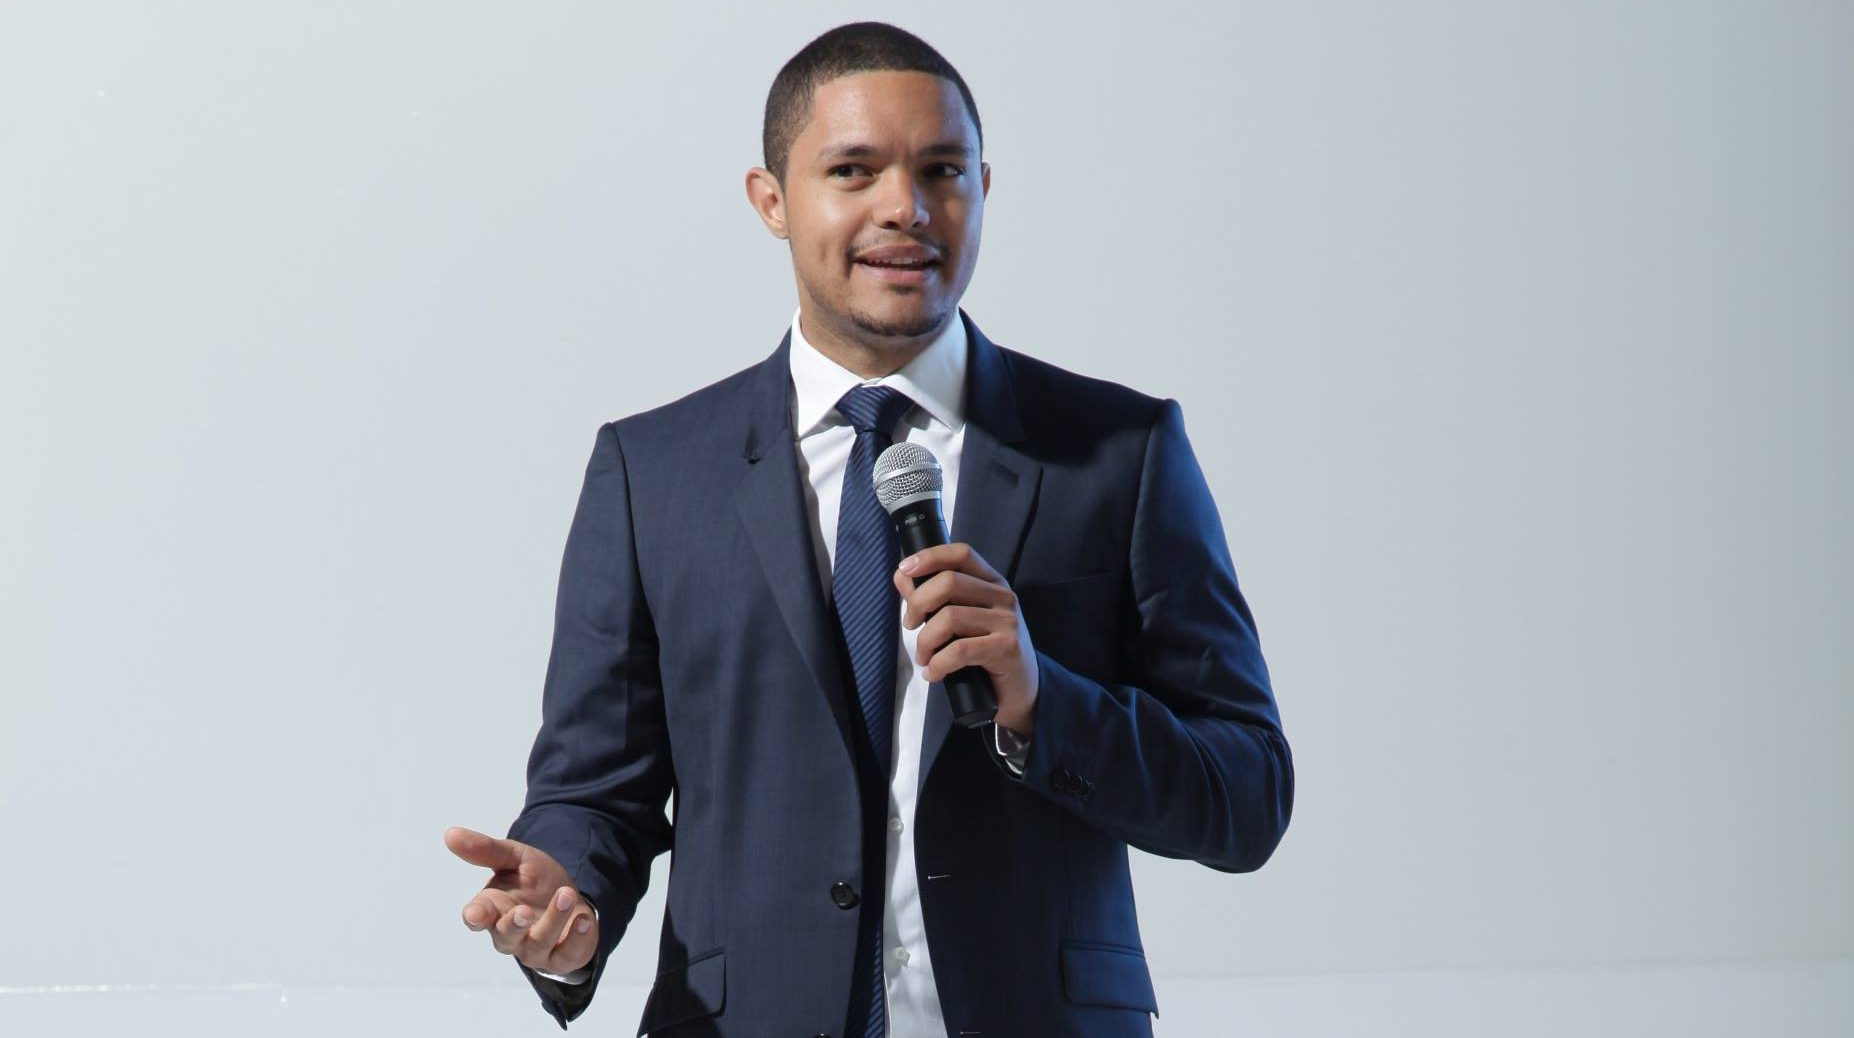 The Daily Show's Trevor Noah is in Toronto this Friday